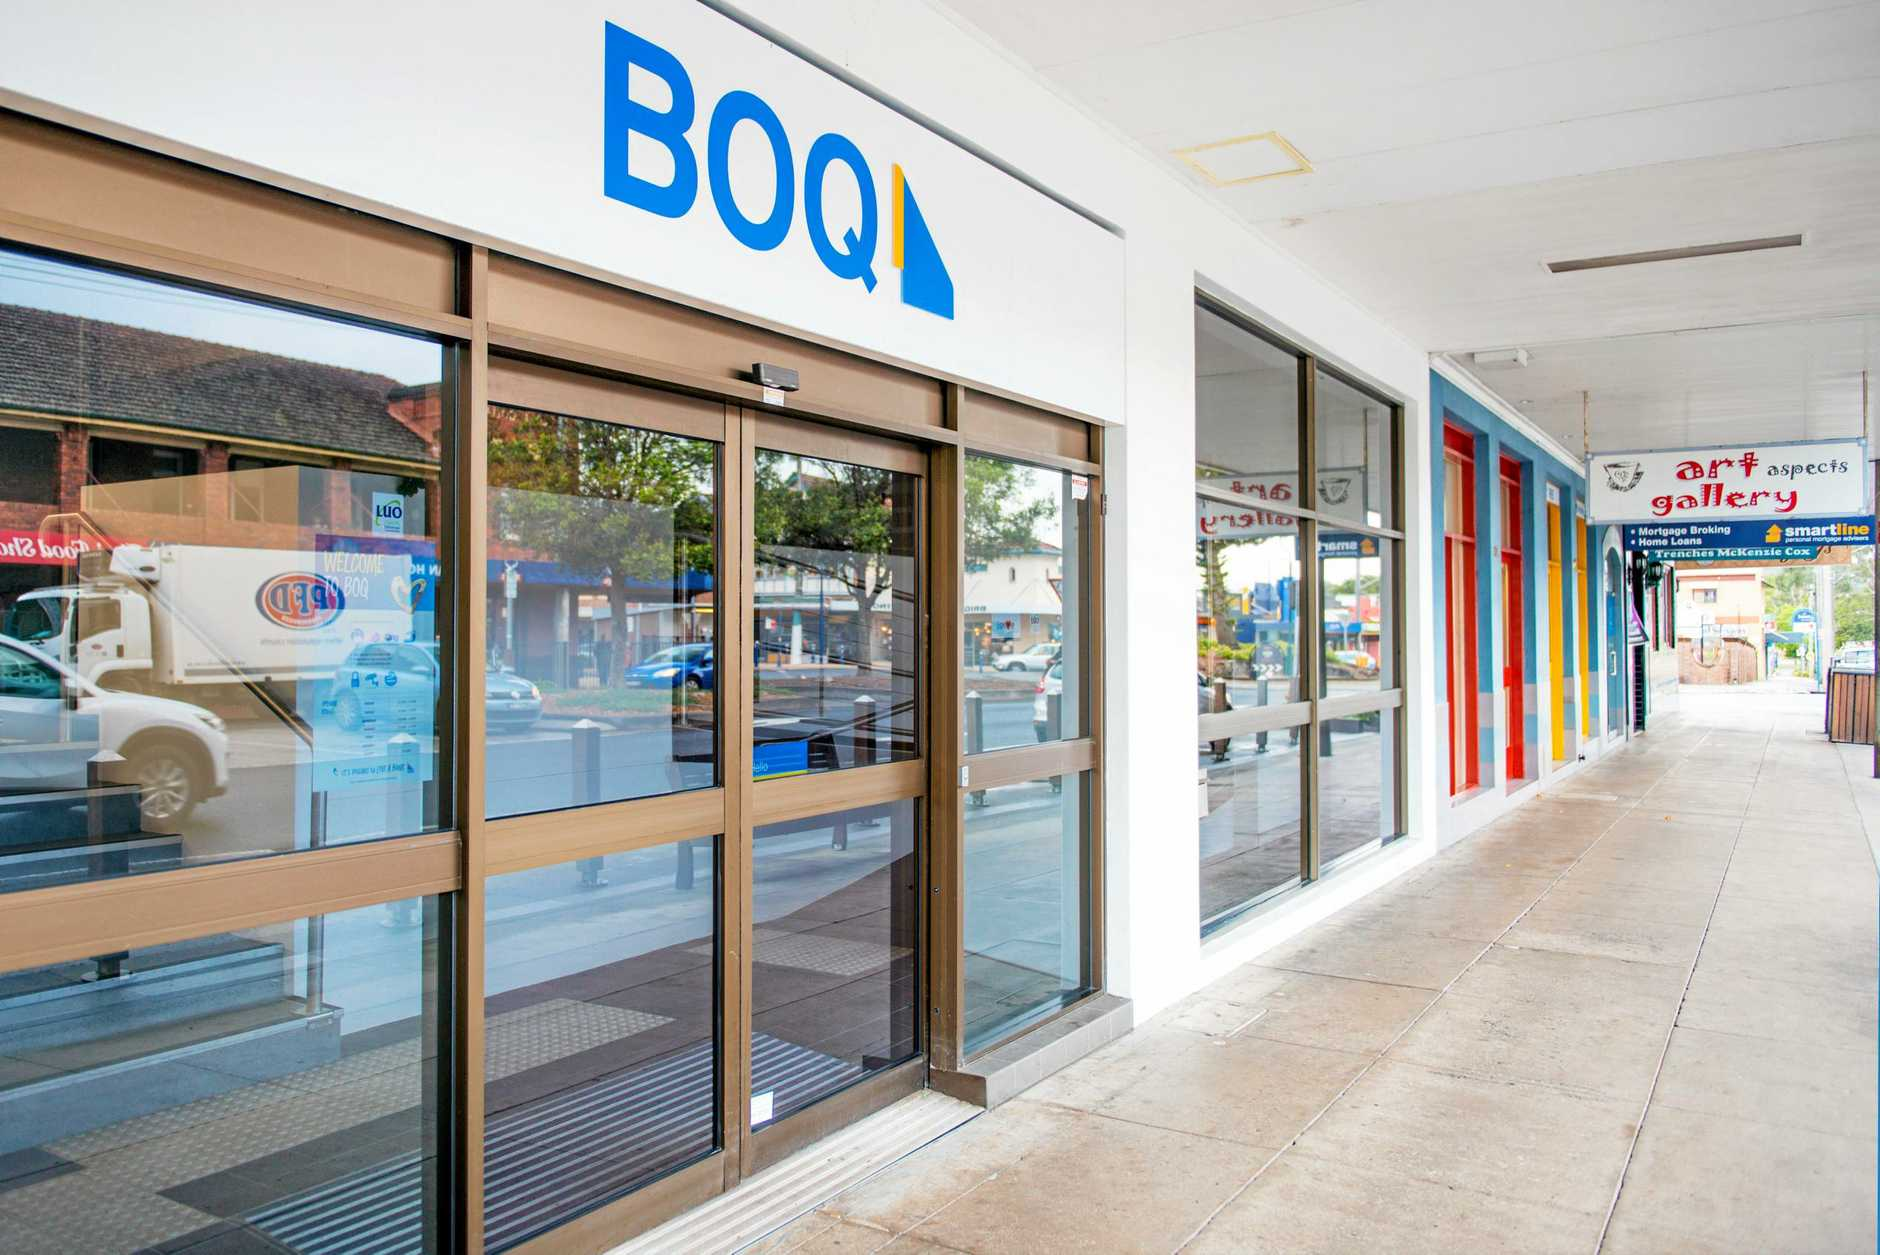 HOT PROPERTY: A Sydney investor was so impressed by the value to be had in the Lismore CBD and it's robust future, the investor snapped up a property at 100-104 Woodlark St, for $1,050,000 at the end of August.